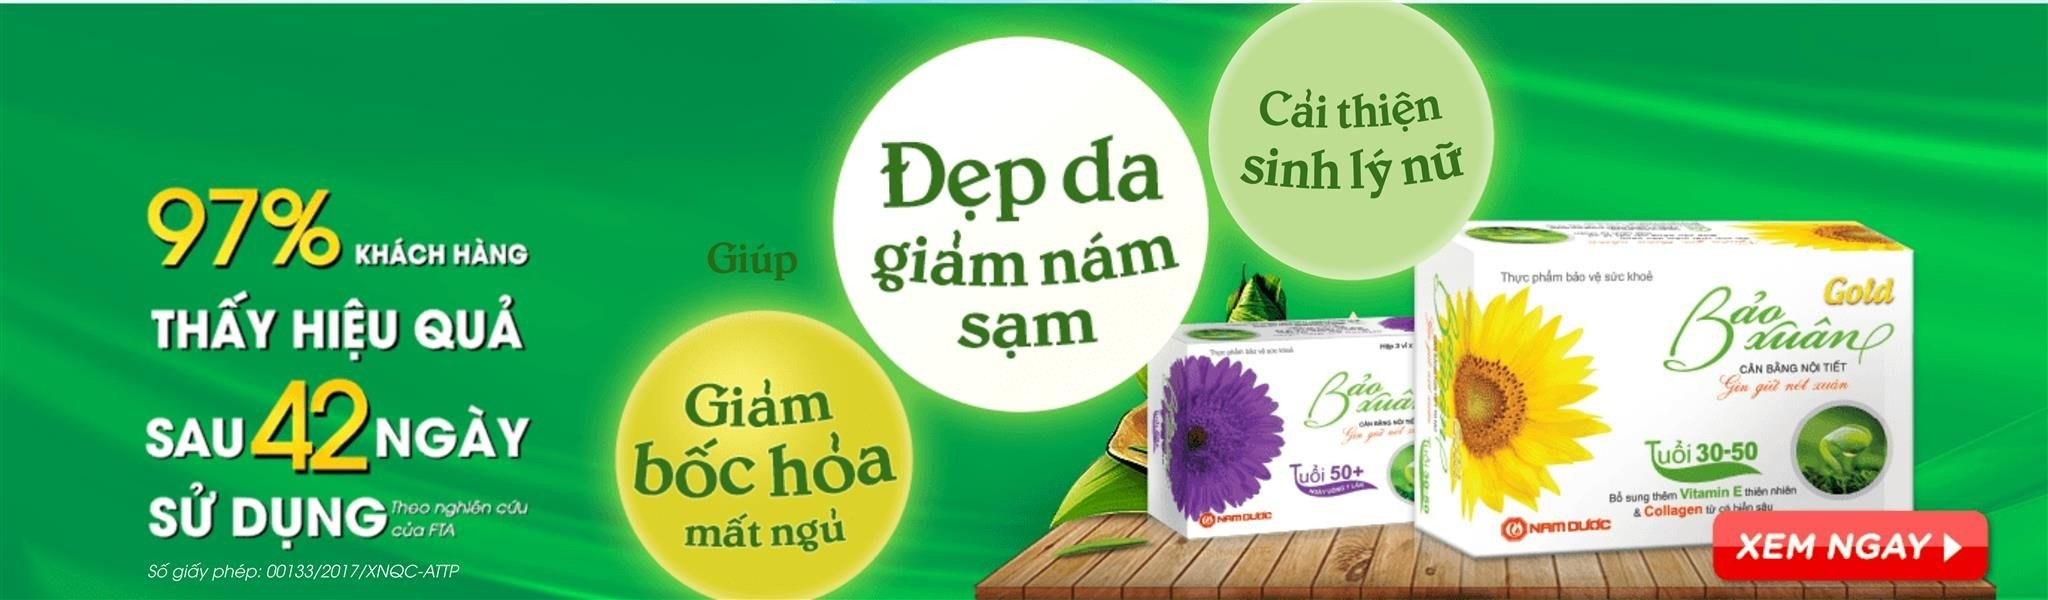 http://namduoconline.vn/collections/san-pham/products/vien-tieu-duong-diabetna-dong-lo